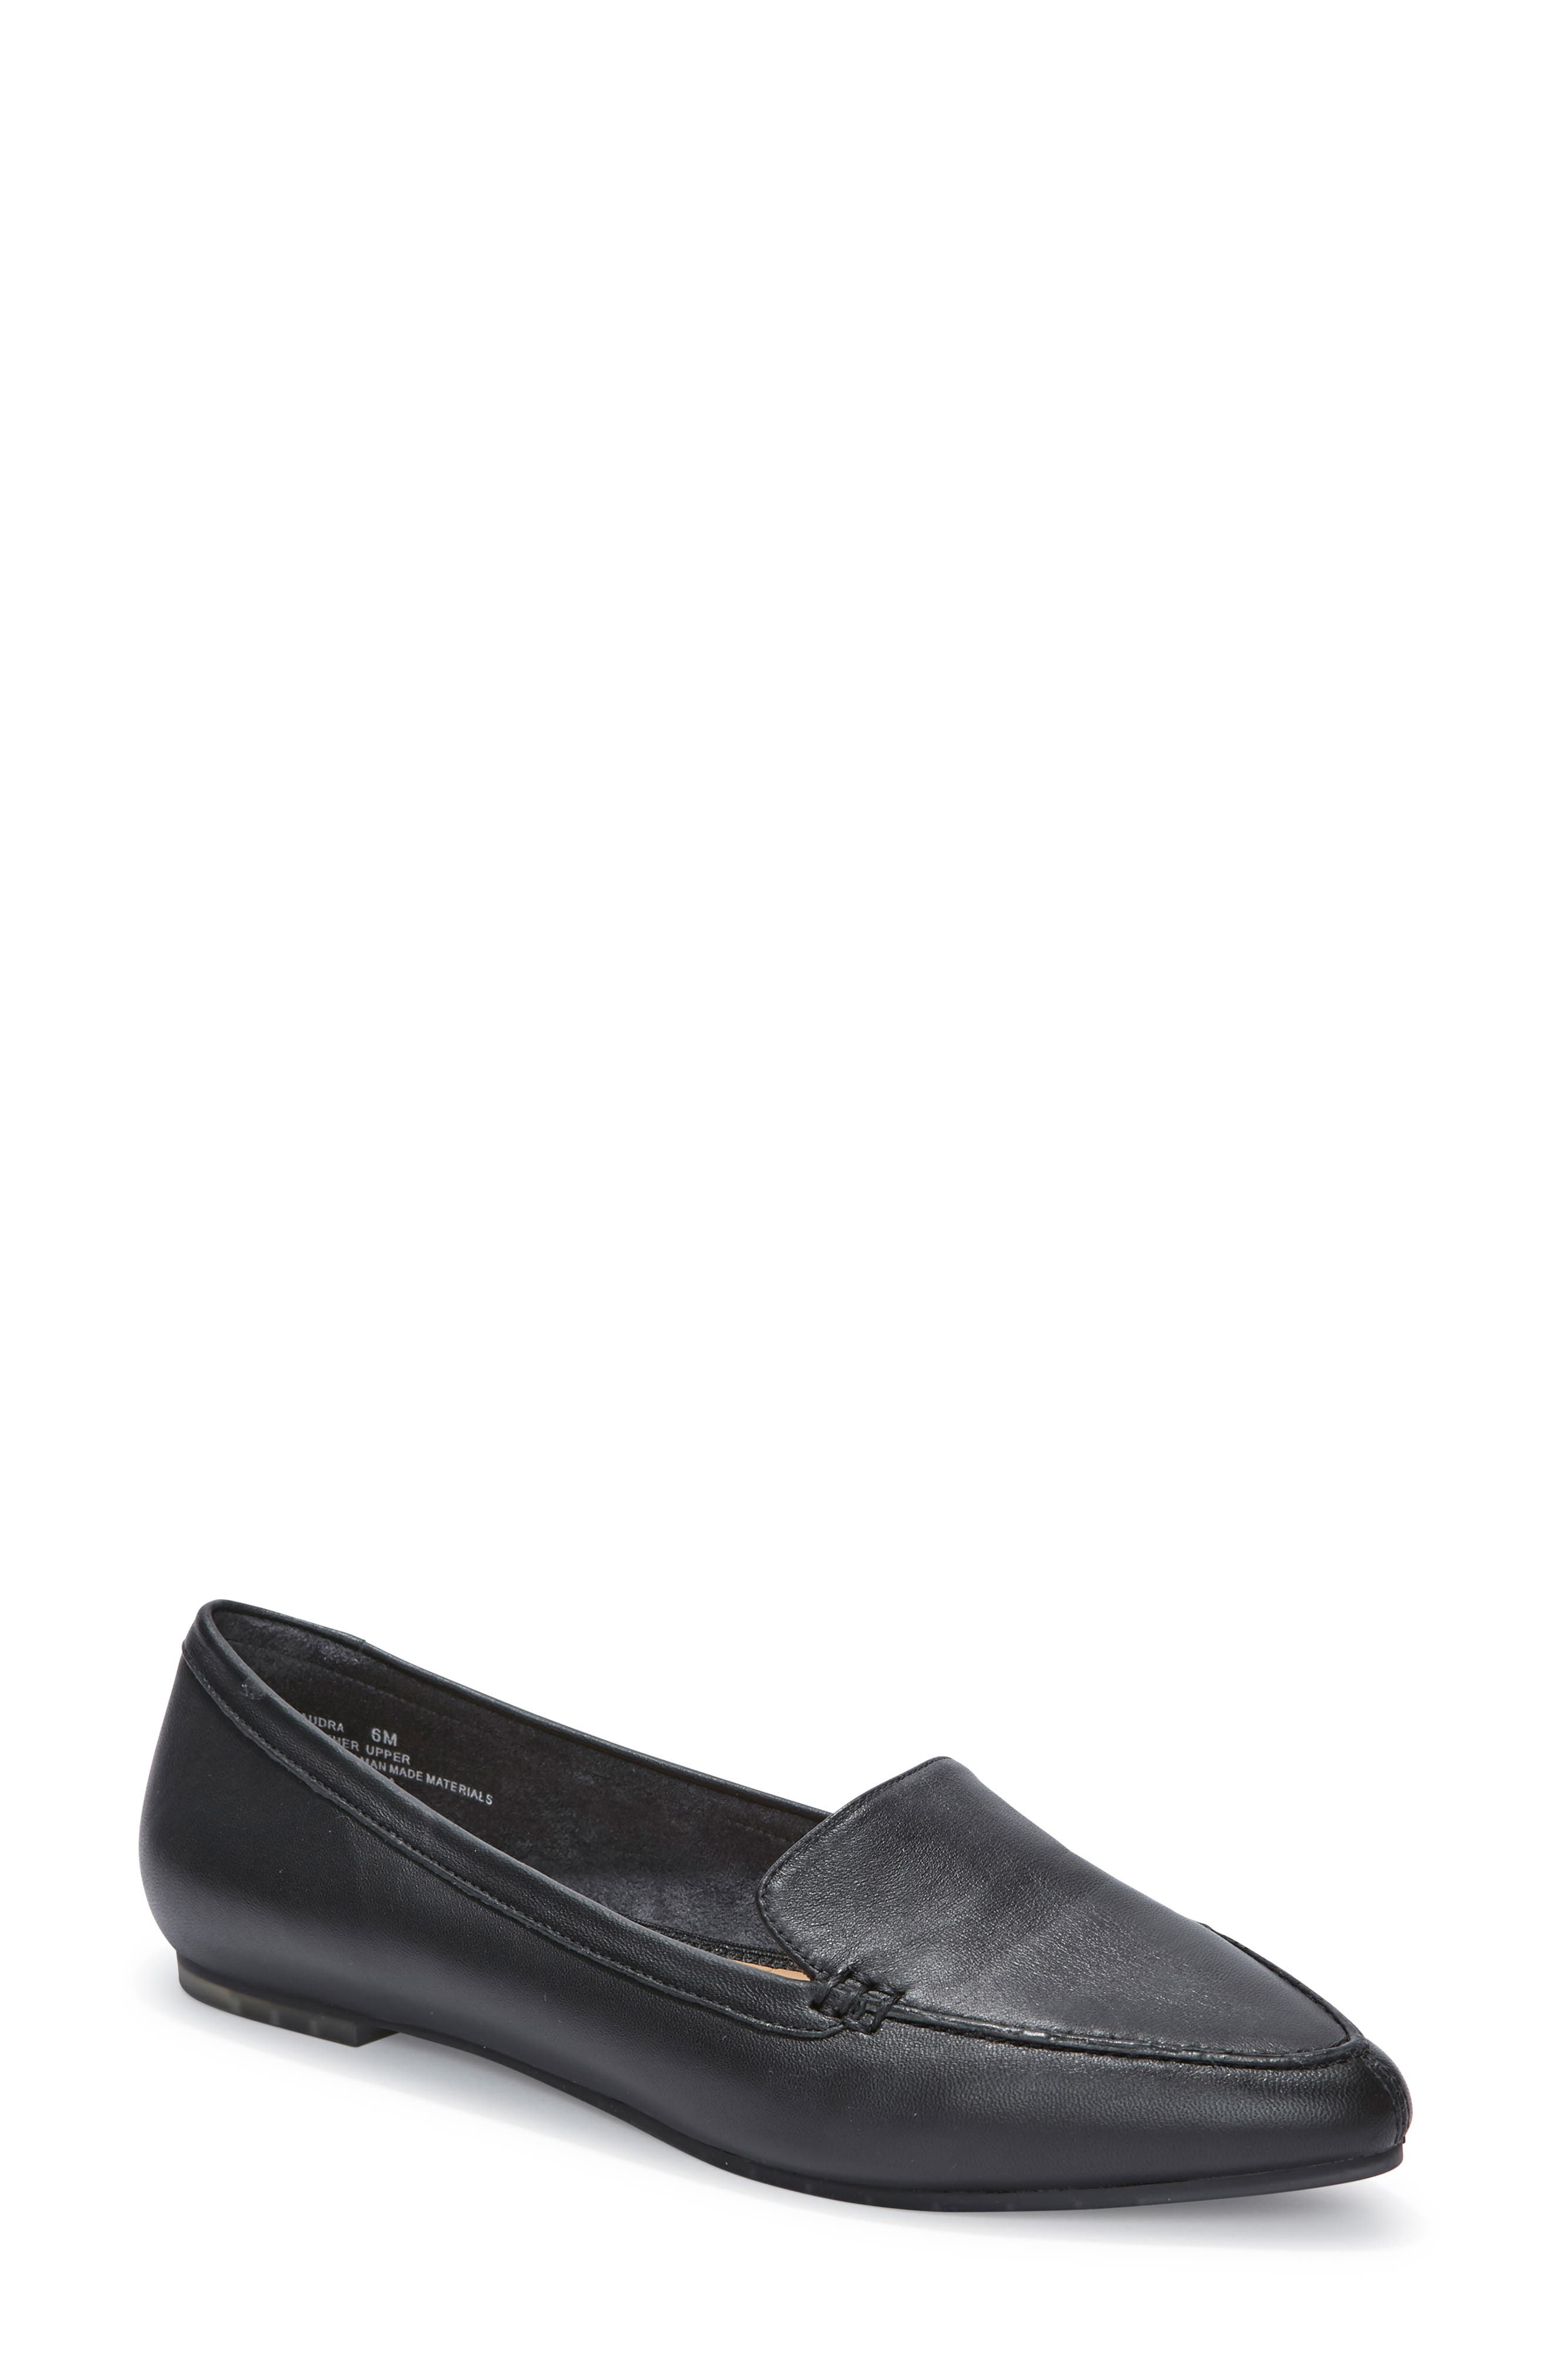 Audra Loafer Flat,                             Main thumbnail 1, color,                             BLACK/ BLACK LEATHER